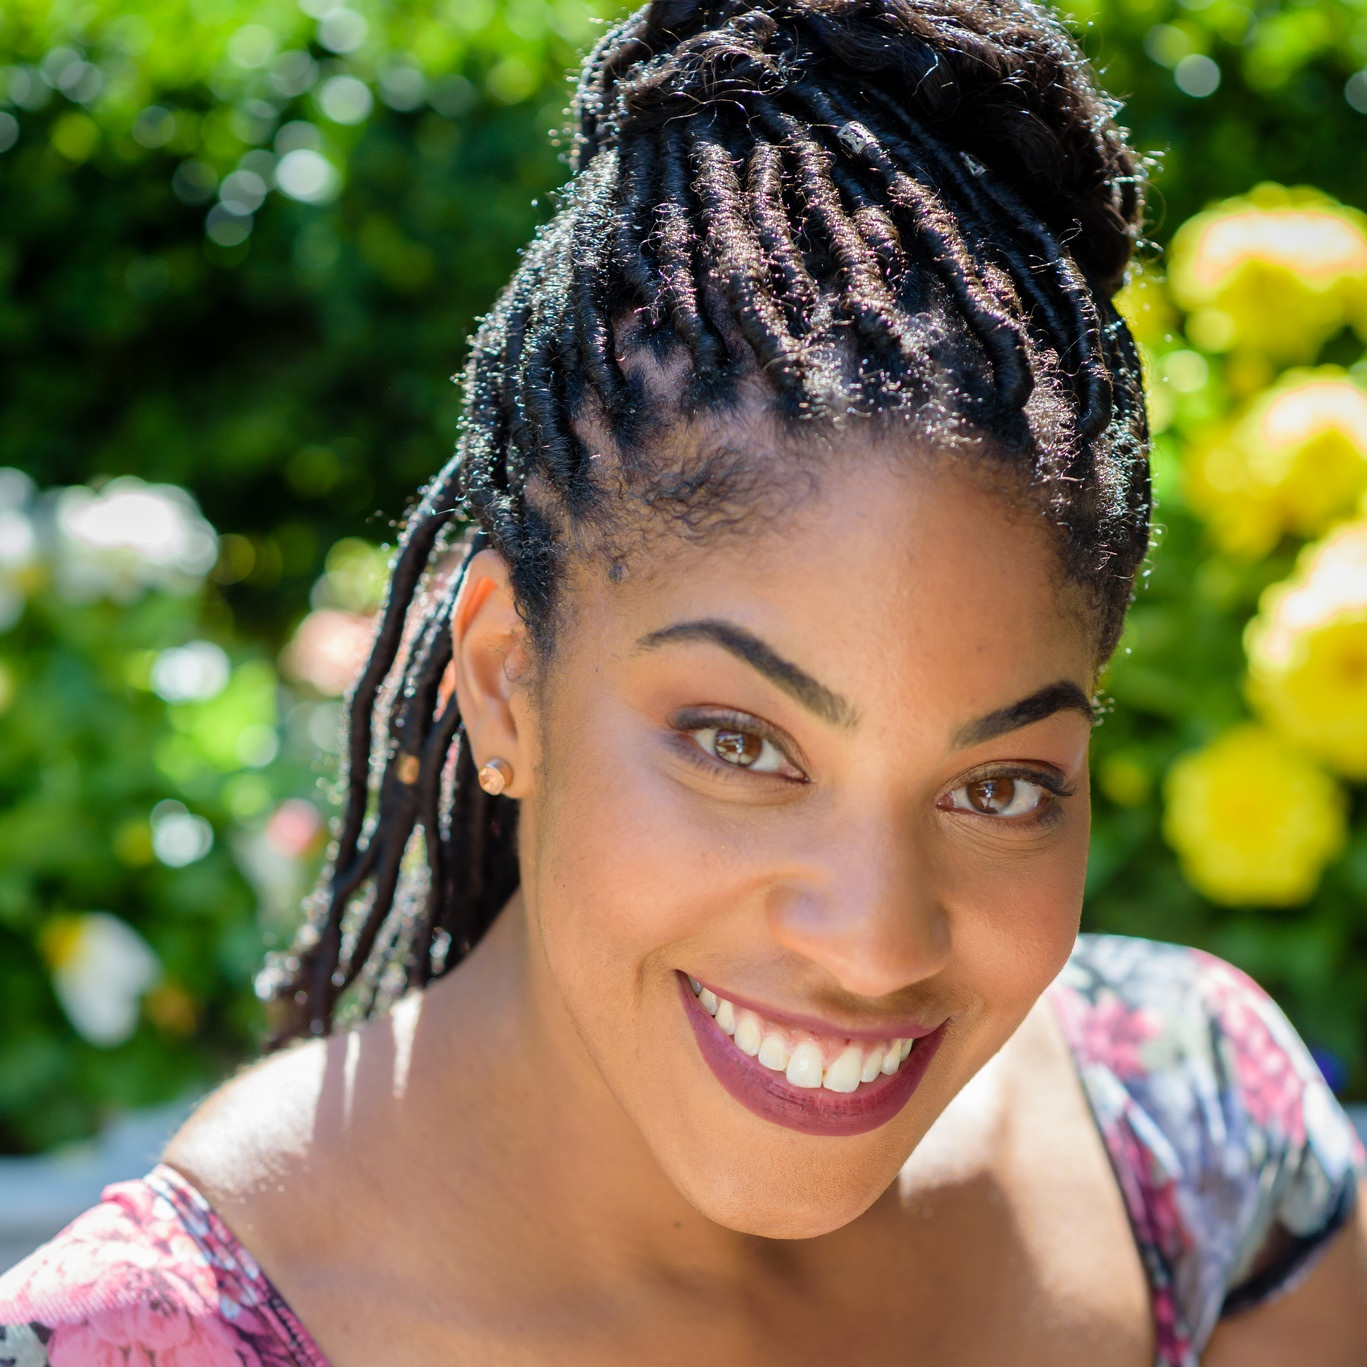 Ayasha Jamila Tripp   Story Coach | Emcee | Board Member  I am a lover of storytelling in all forms: writing, film, theatre... Listen for a Change, however, added a new love of storytelling that pushed me beyond characters, cinematic views, and dialogue. It just requires me and my truth. I am a Bay Area Native with roots in Pittsburg and a heartbeat in Oakland. I use writing and education to fight for social justice, so it would only makes sense that I am a part of this organization that uses storytelling as a form to ignite change.